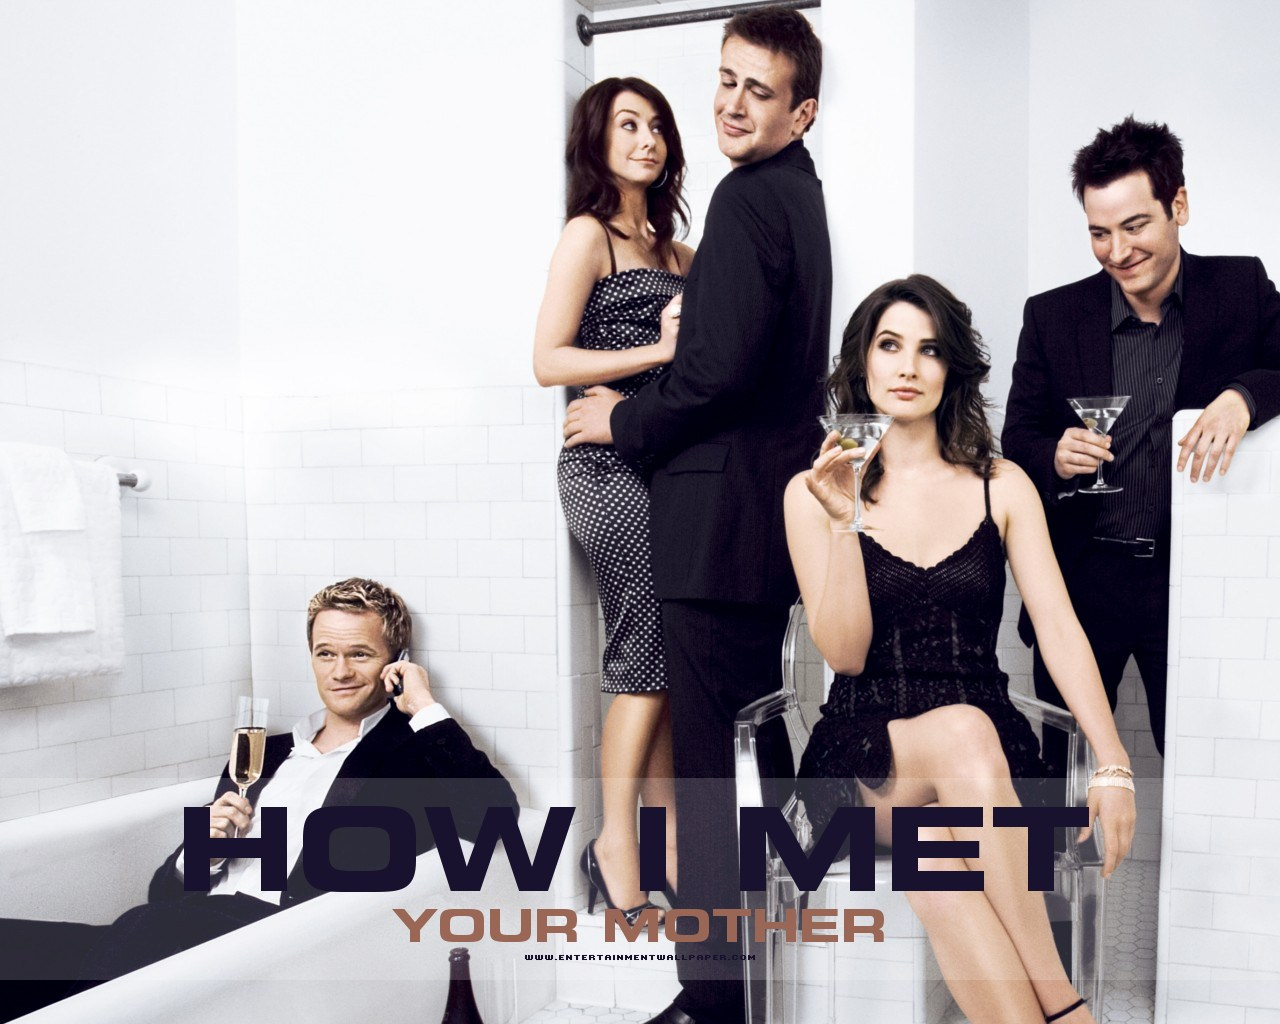 Wallpaper DB how i met your mother background 1280x1024